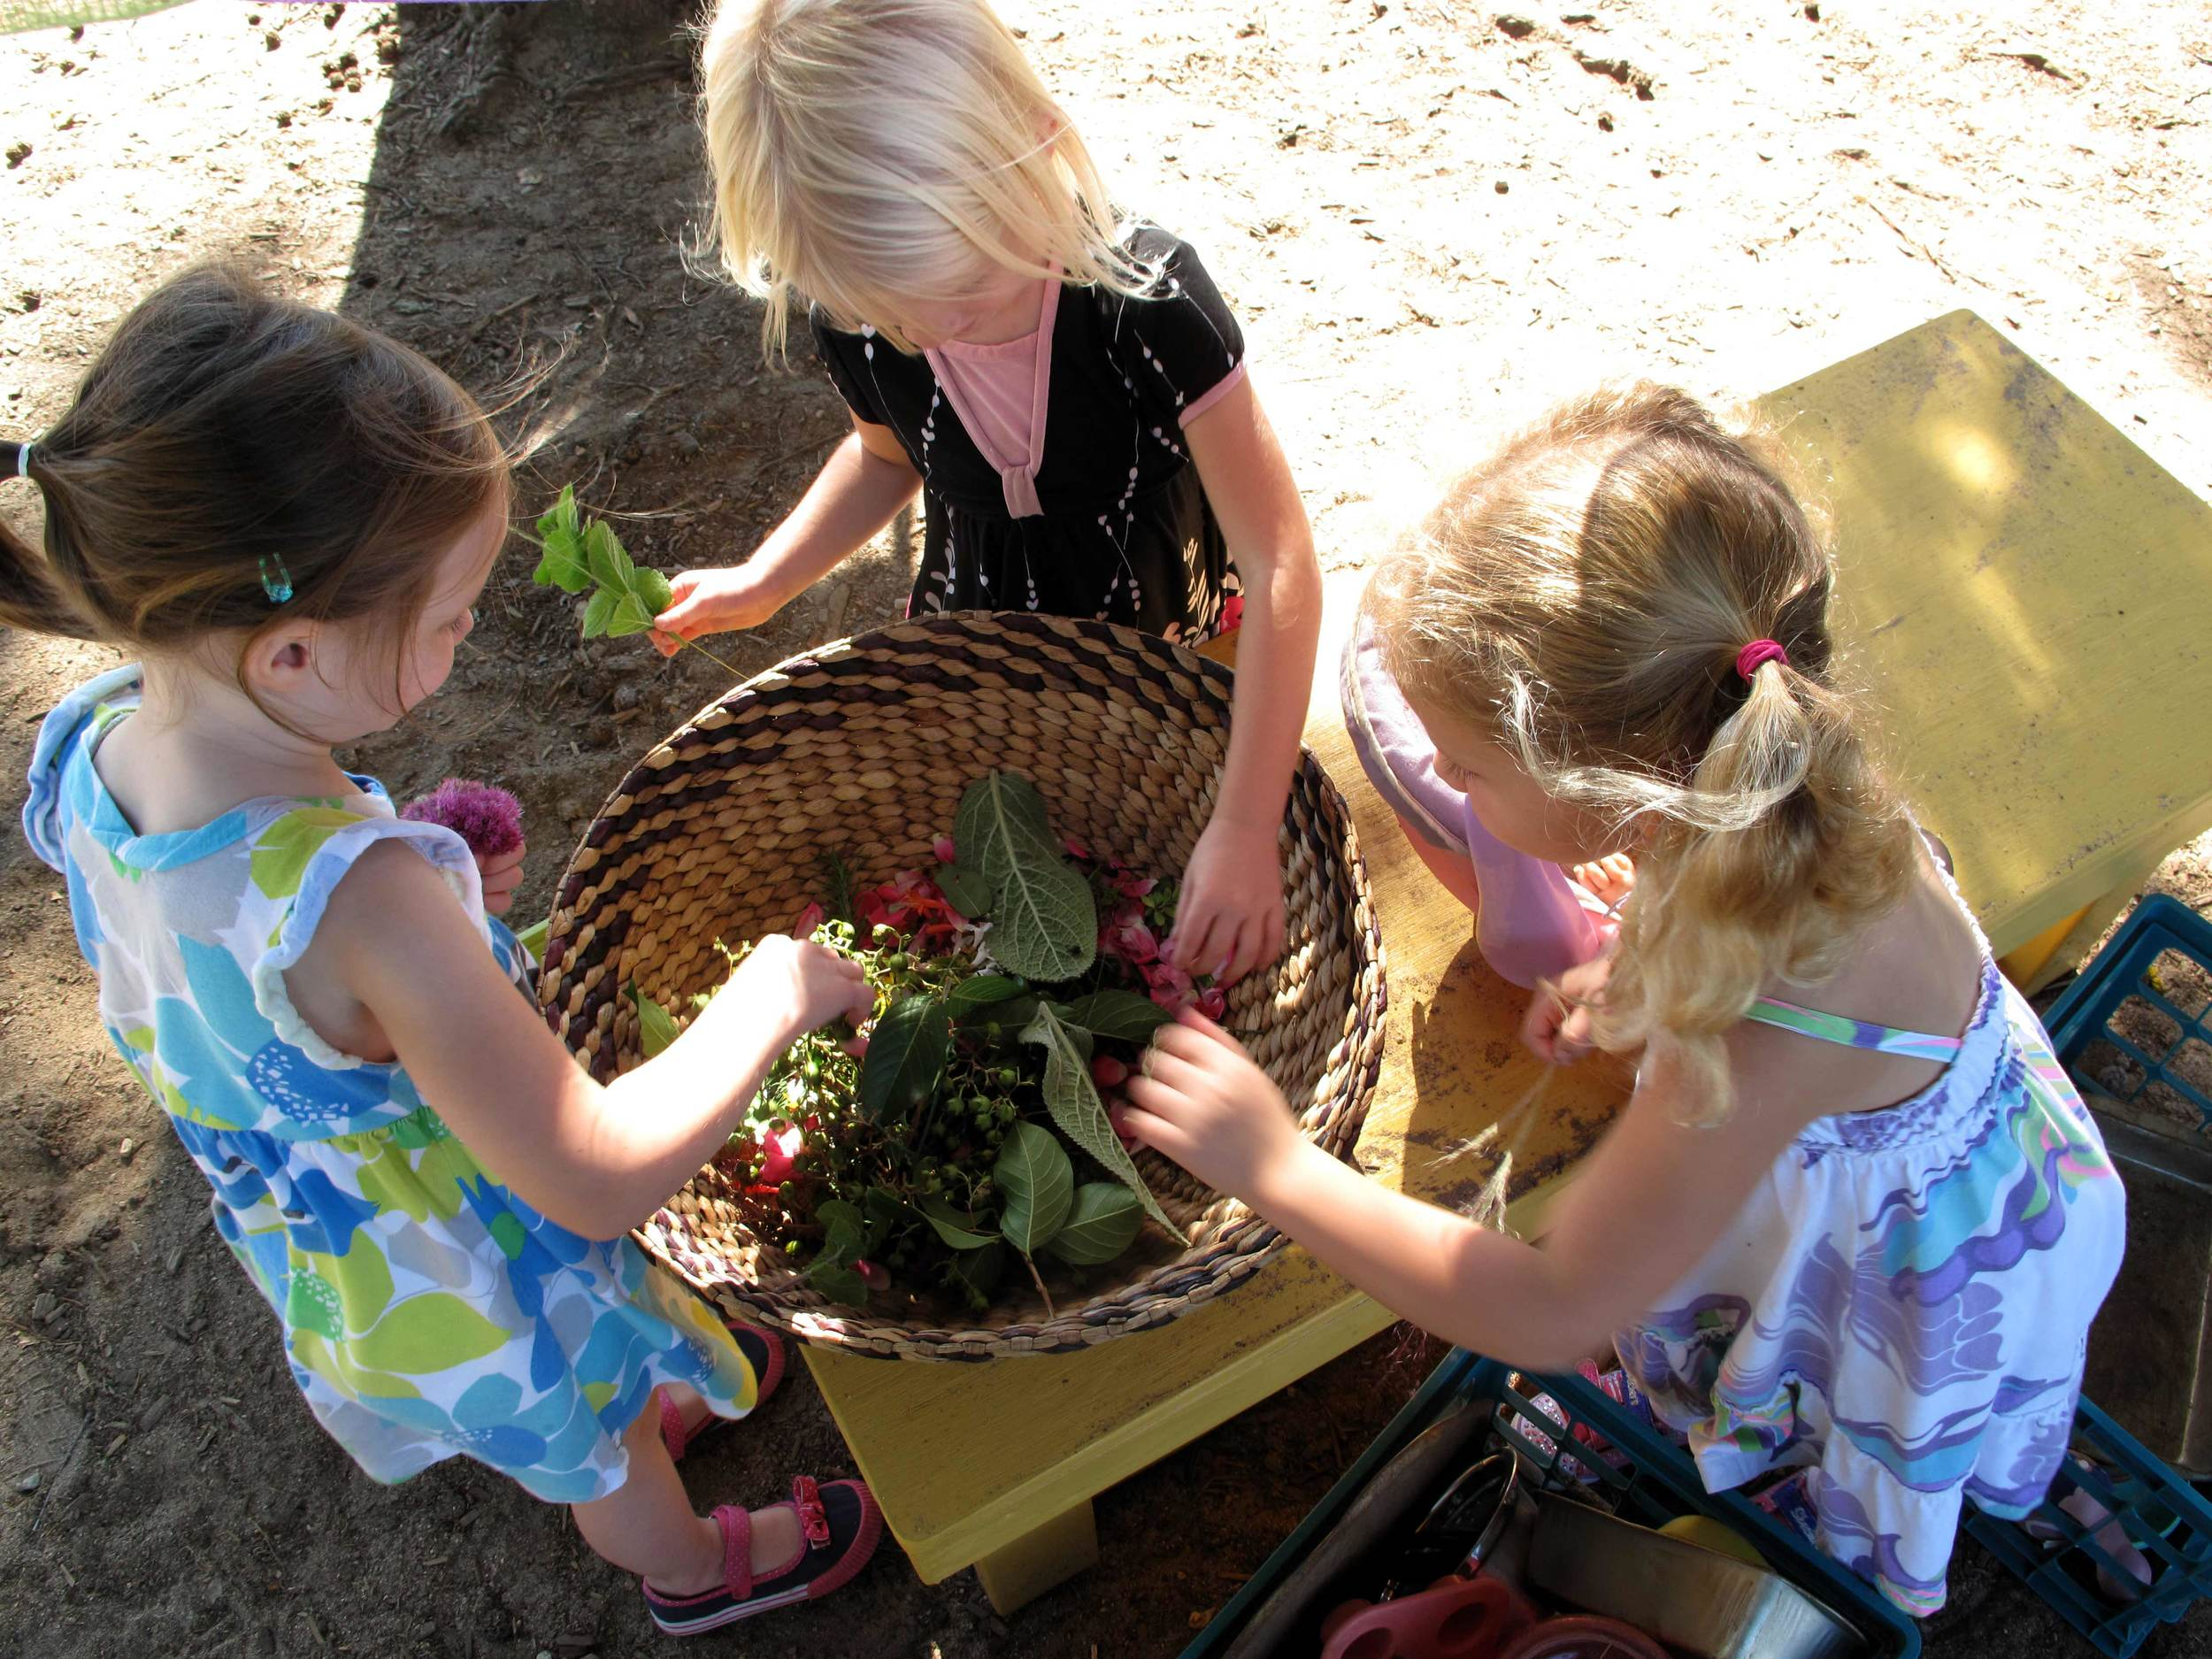 Play and Learning Places  We design places where children can connect with nature.   Learn more